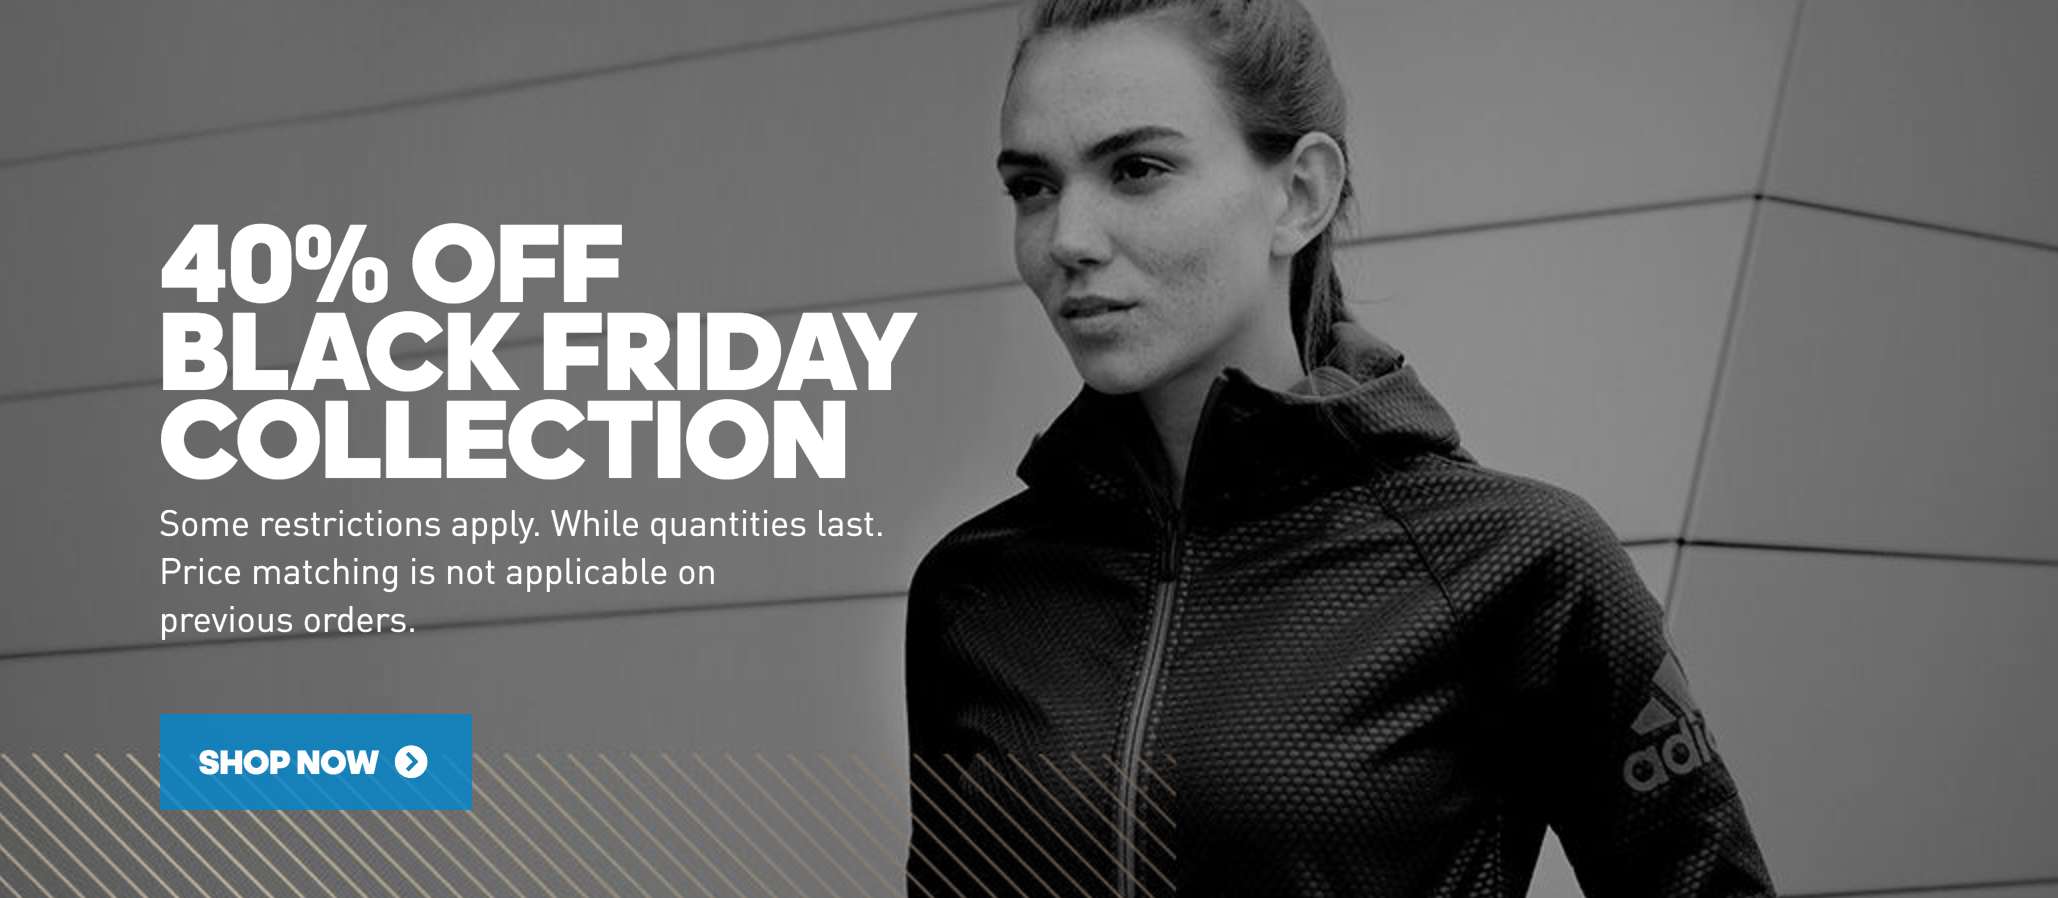 Adidas Canada Sale: Save 40% Off Black Friday Collection for Men, Women and Kids!